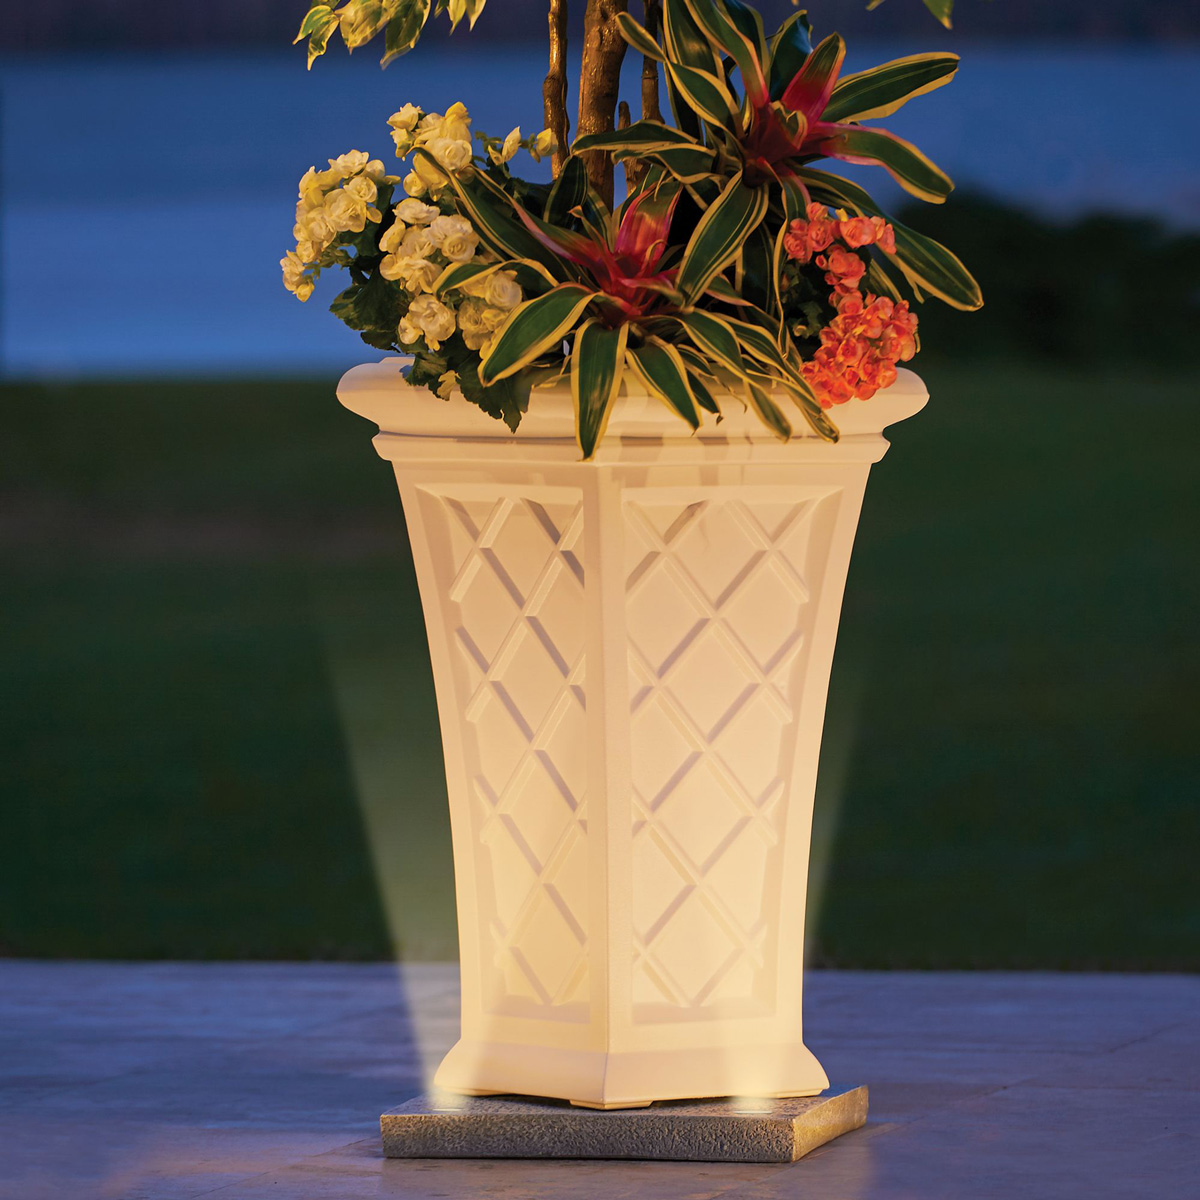 Solar Light Up Planter Base The Green Head